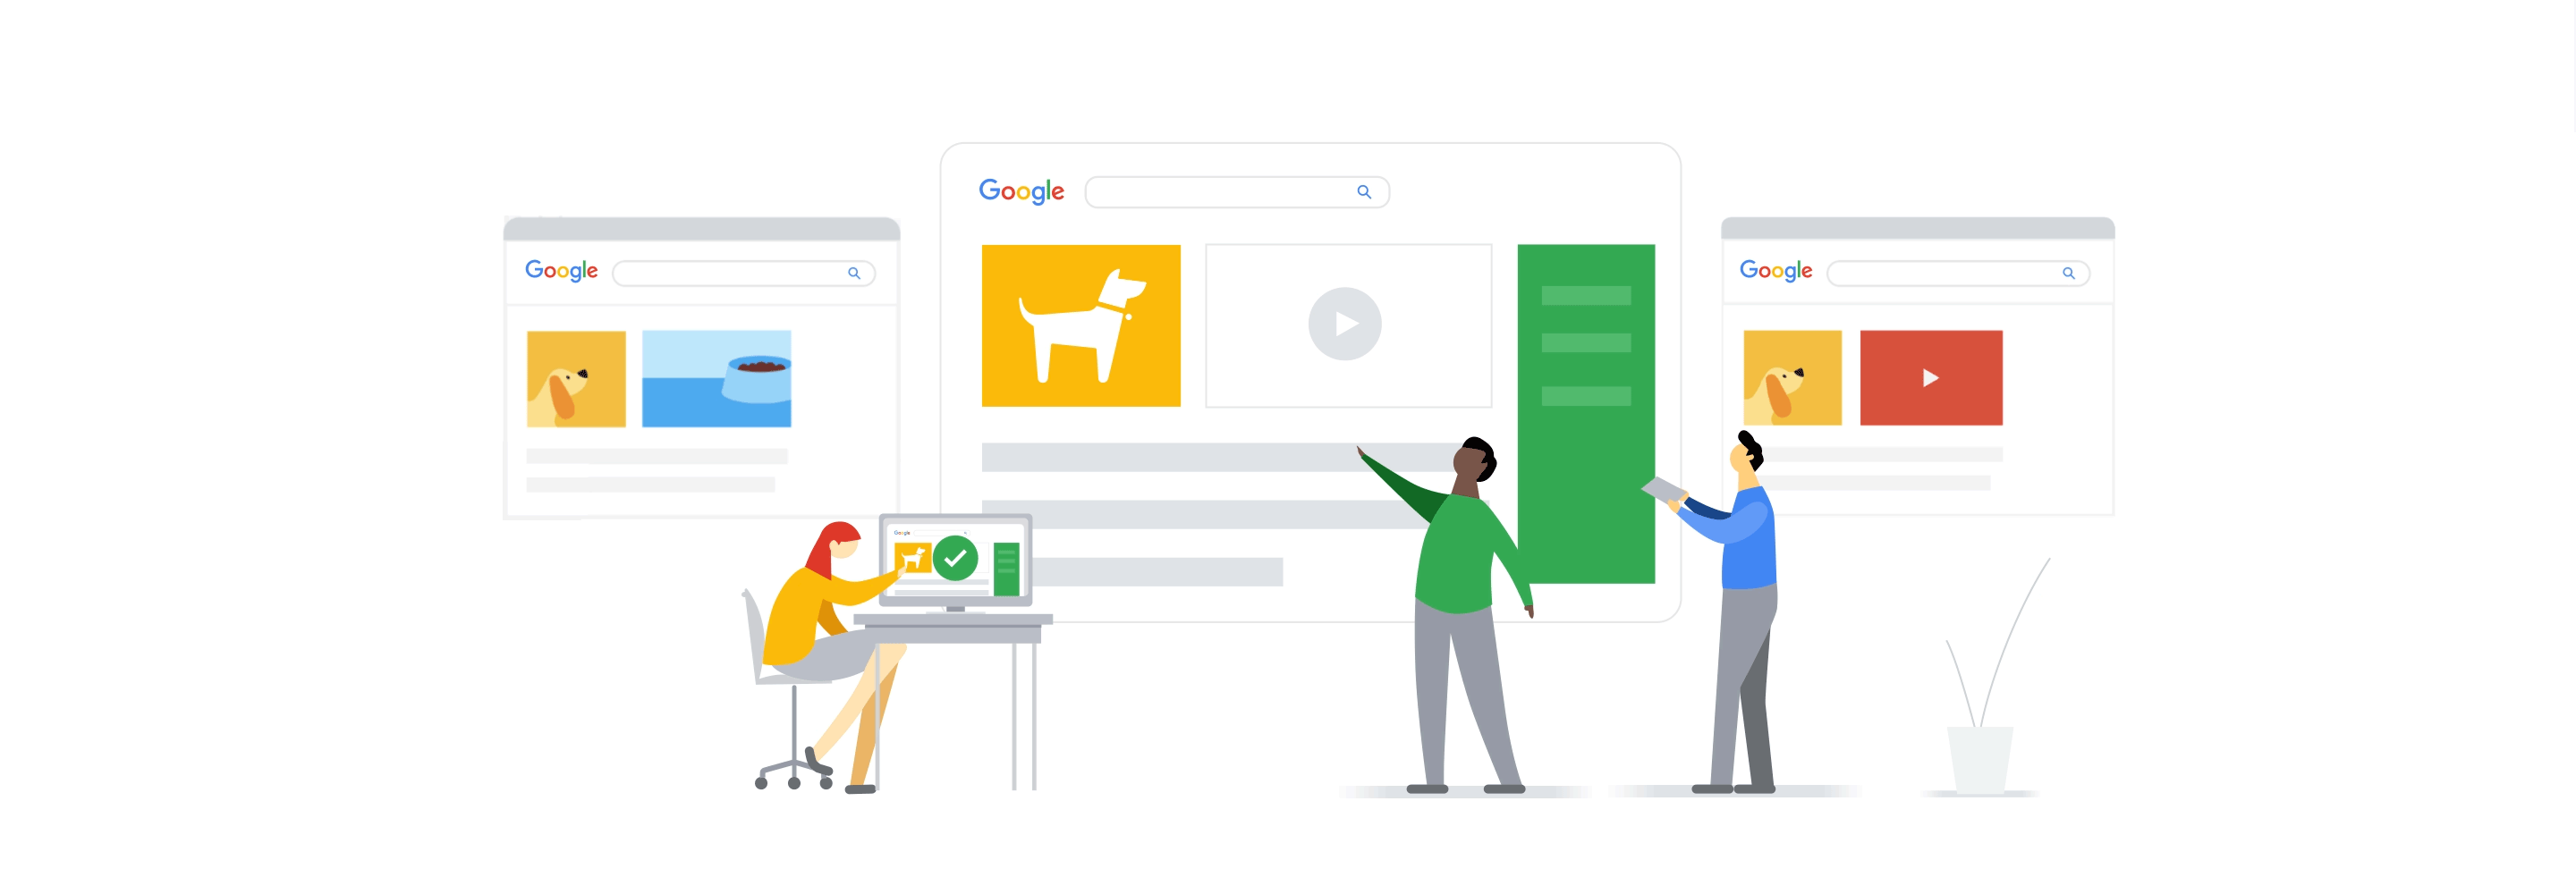 What Happens When a Search Is Performed